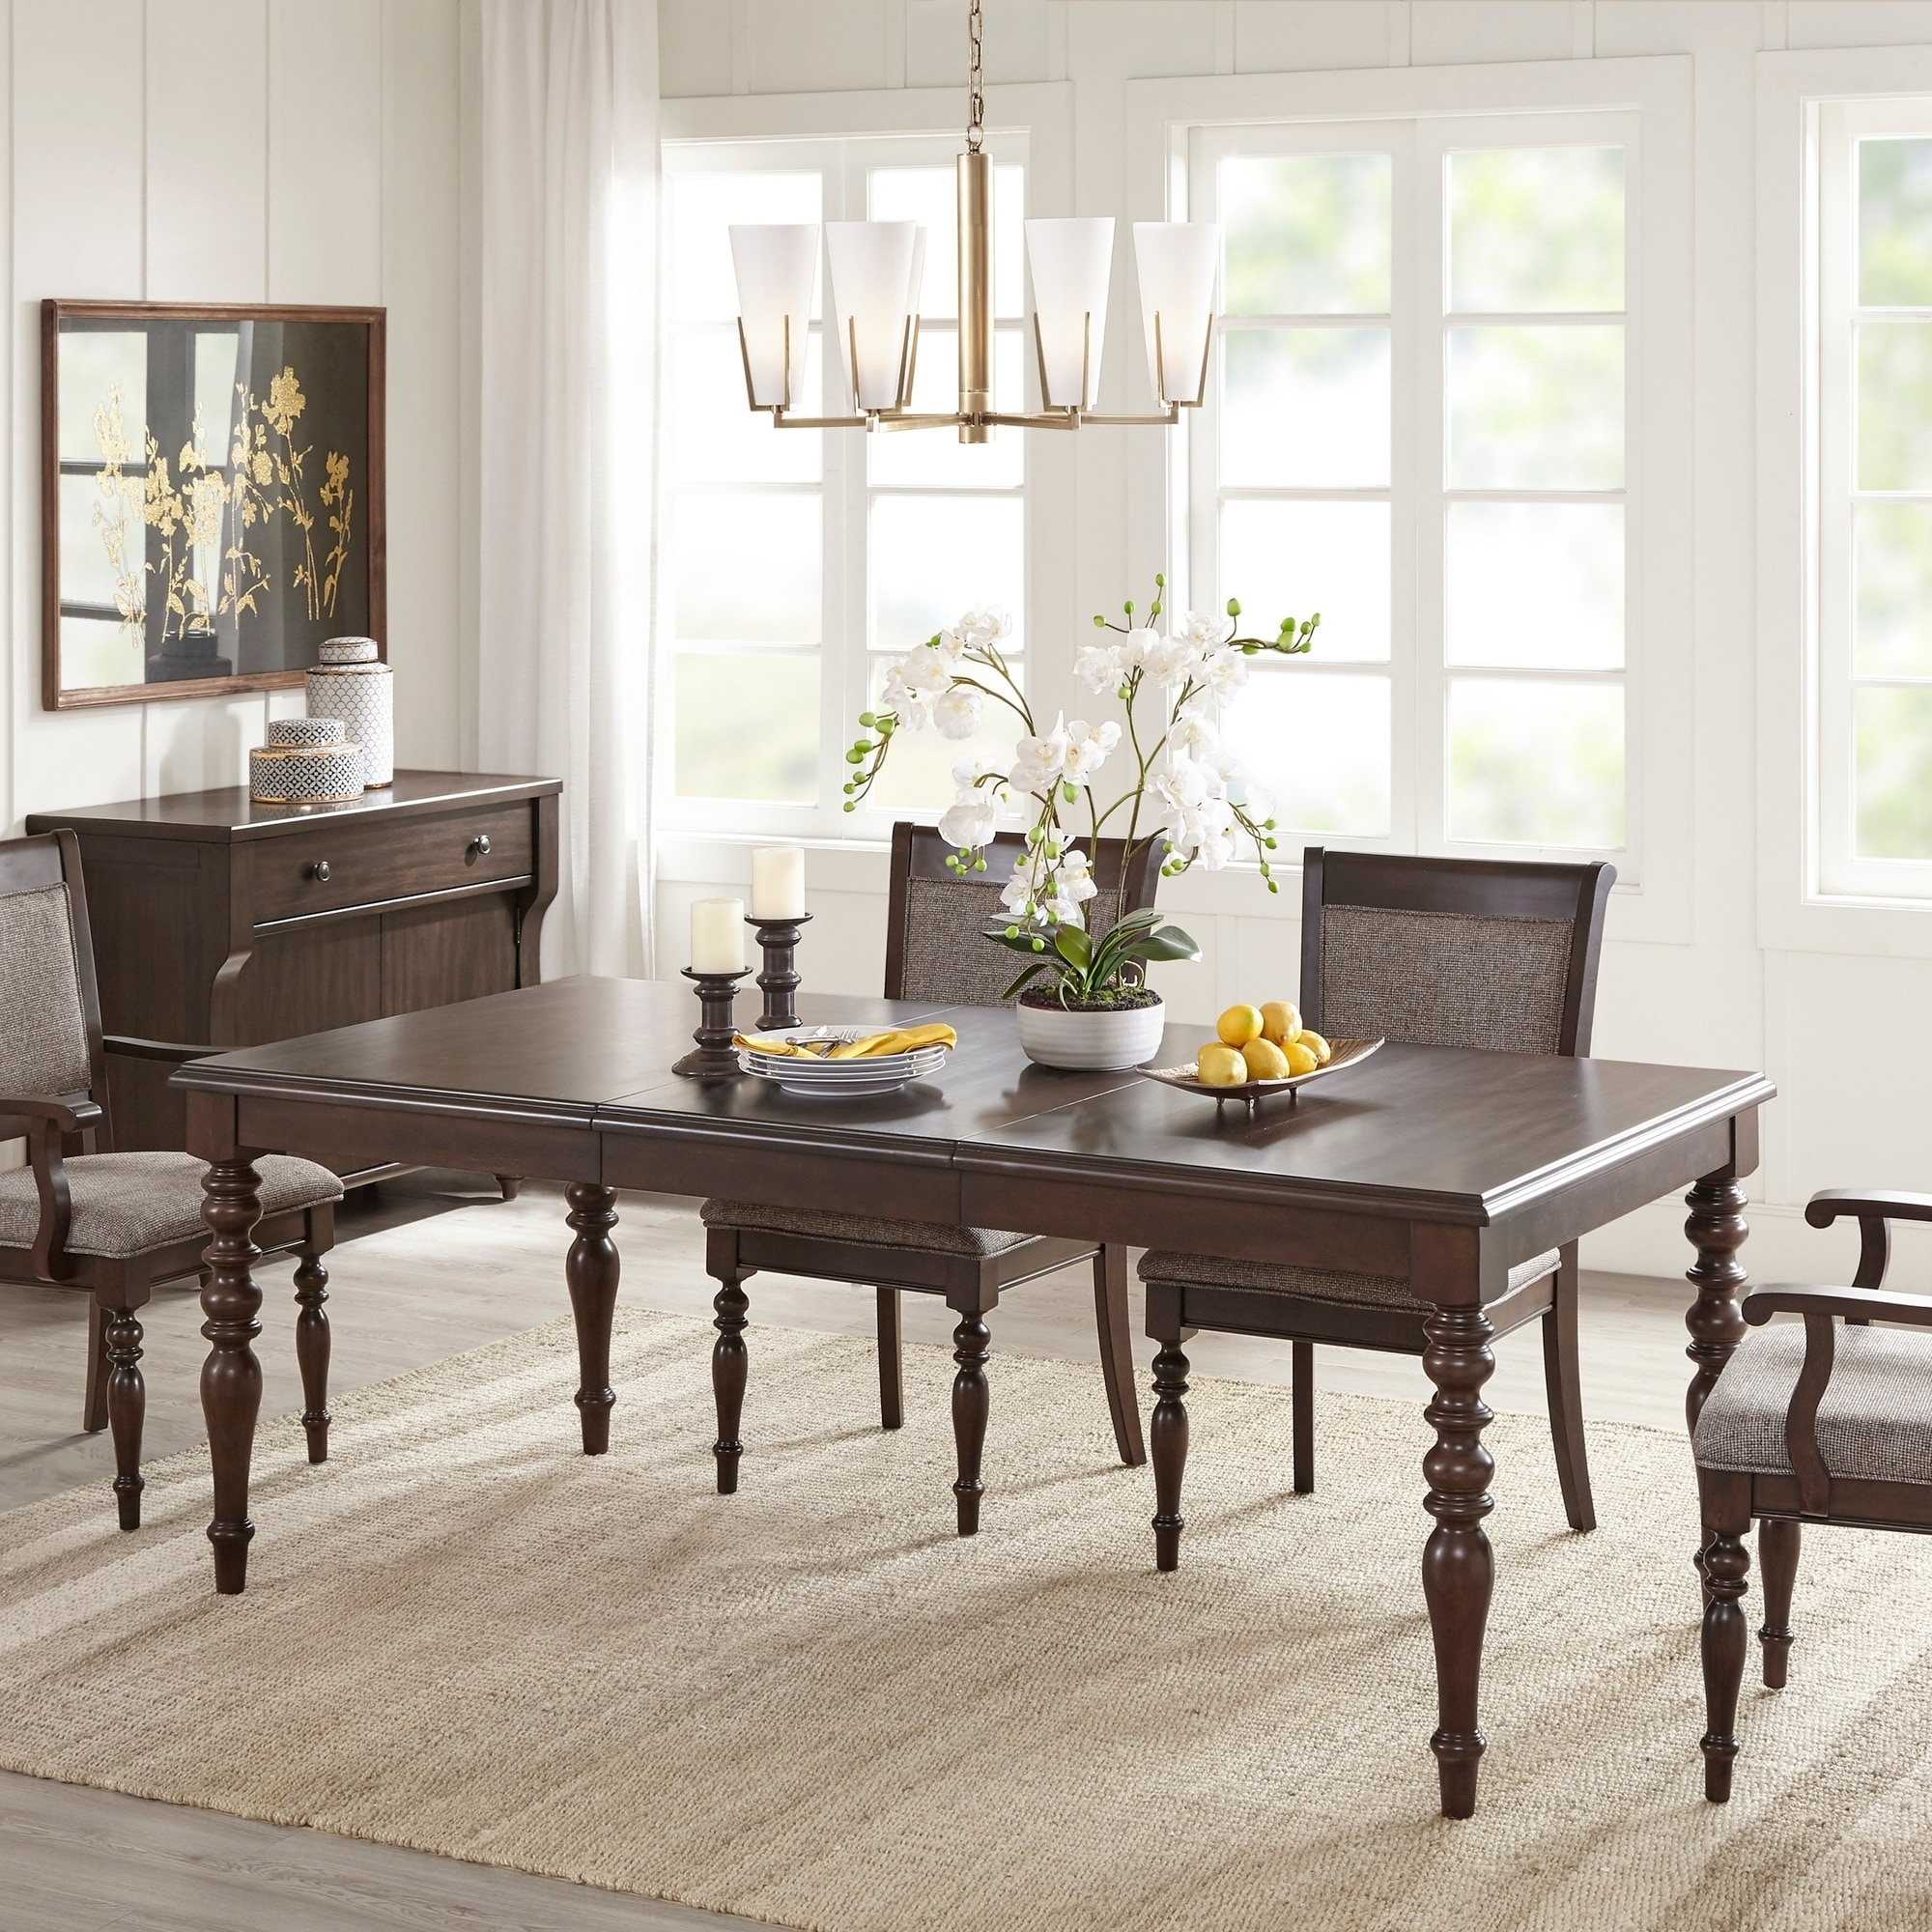 Madison Park Signature Beckett Morocco Brown Extension Dining Table -  morocco brown - 58\